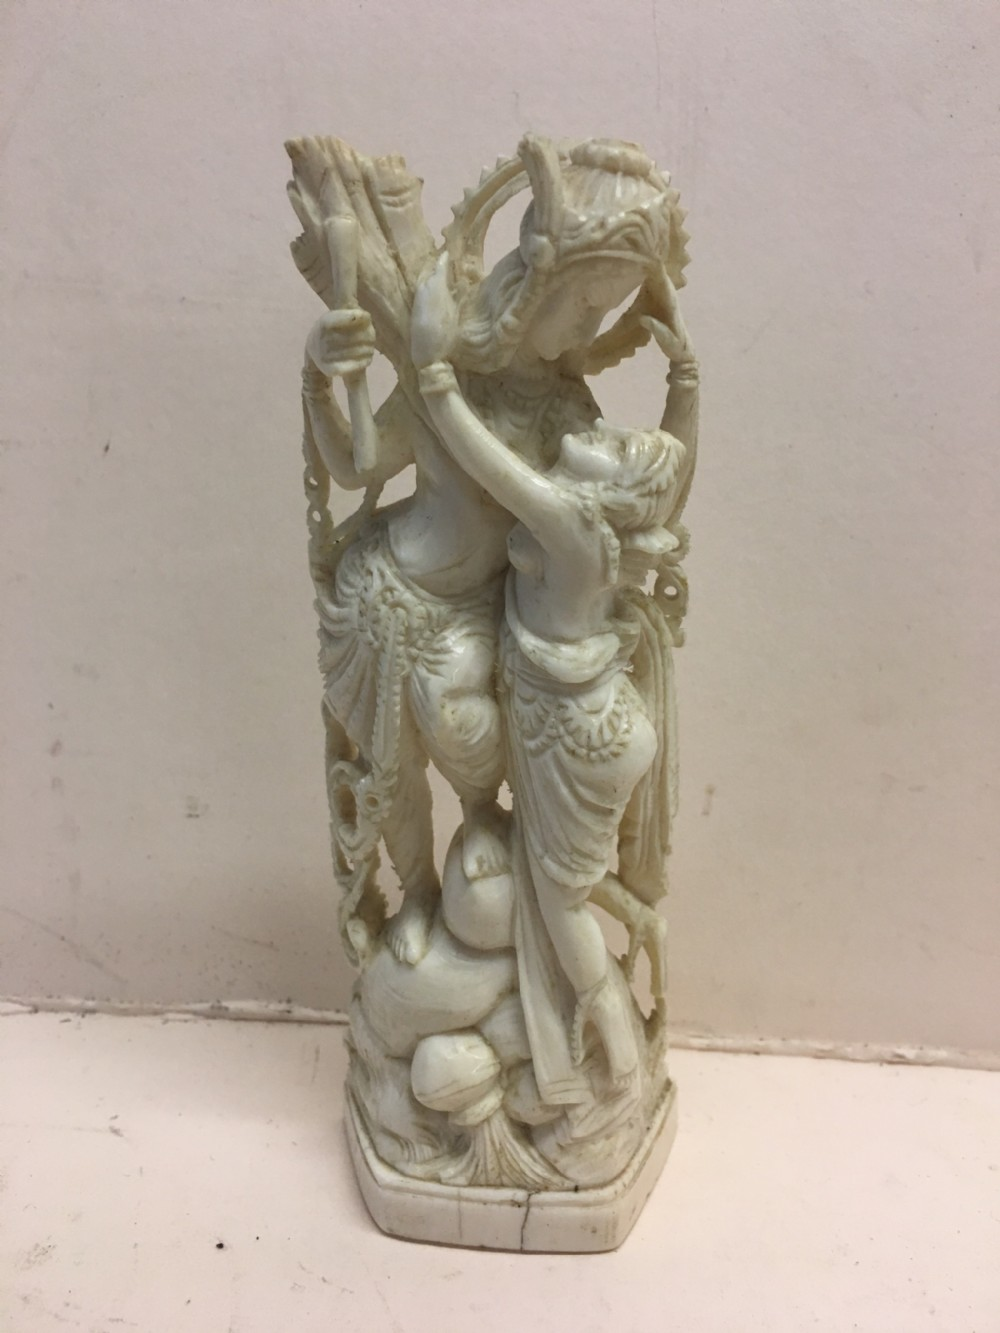 edwardian period ivory carving of a couple embracing